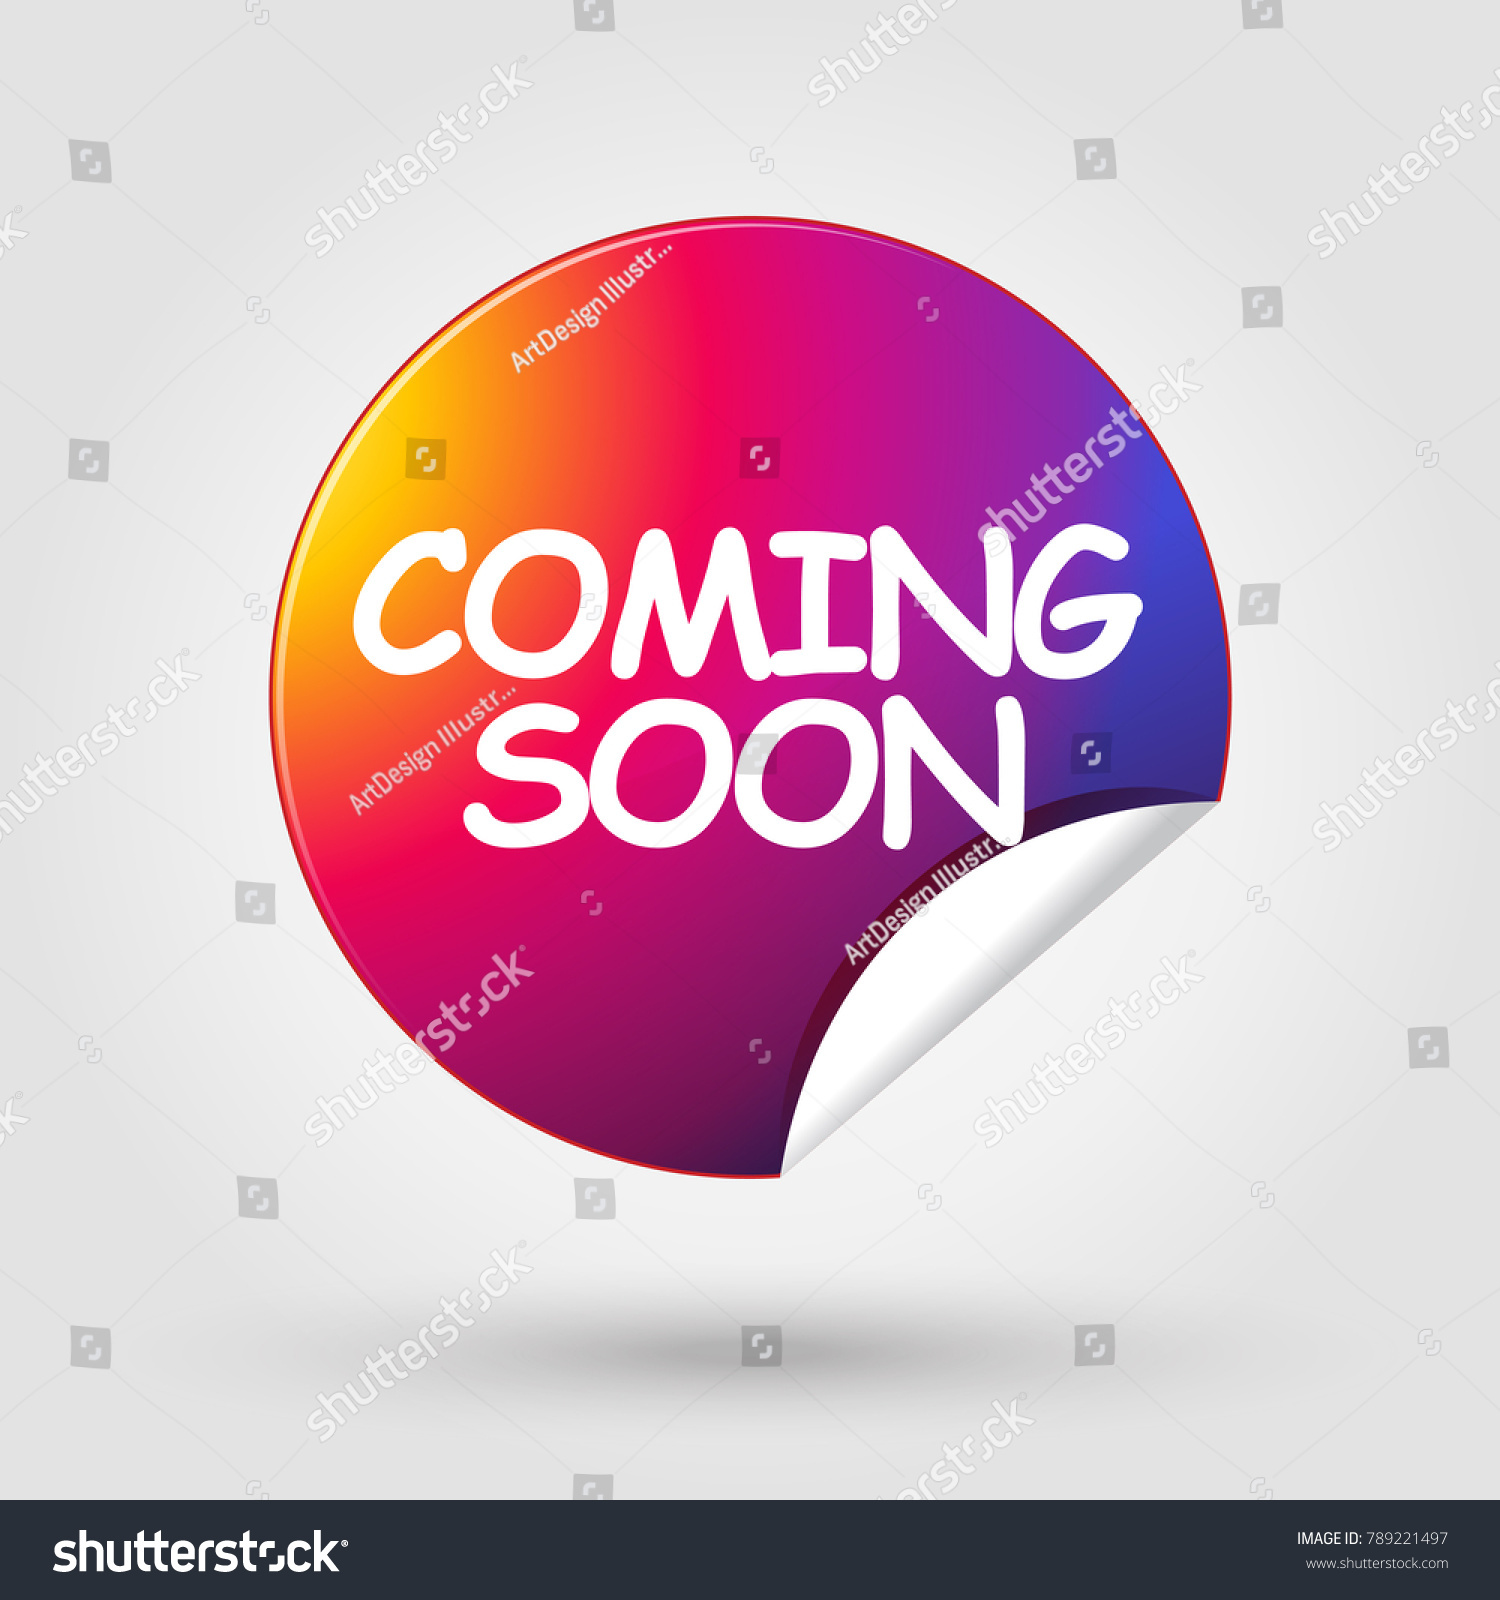 Coming Soon Labels Instagram Gift Tag Stock Vector Royalty Free 789221497